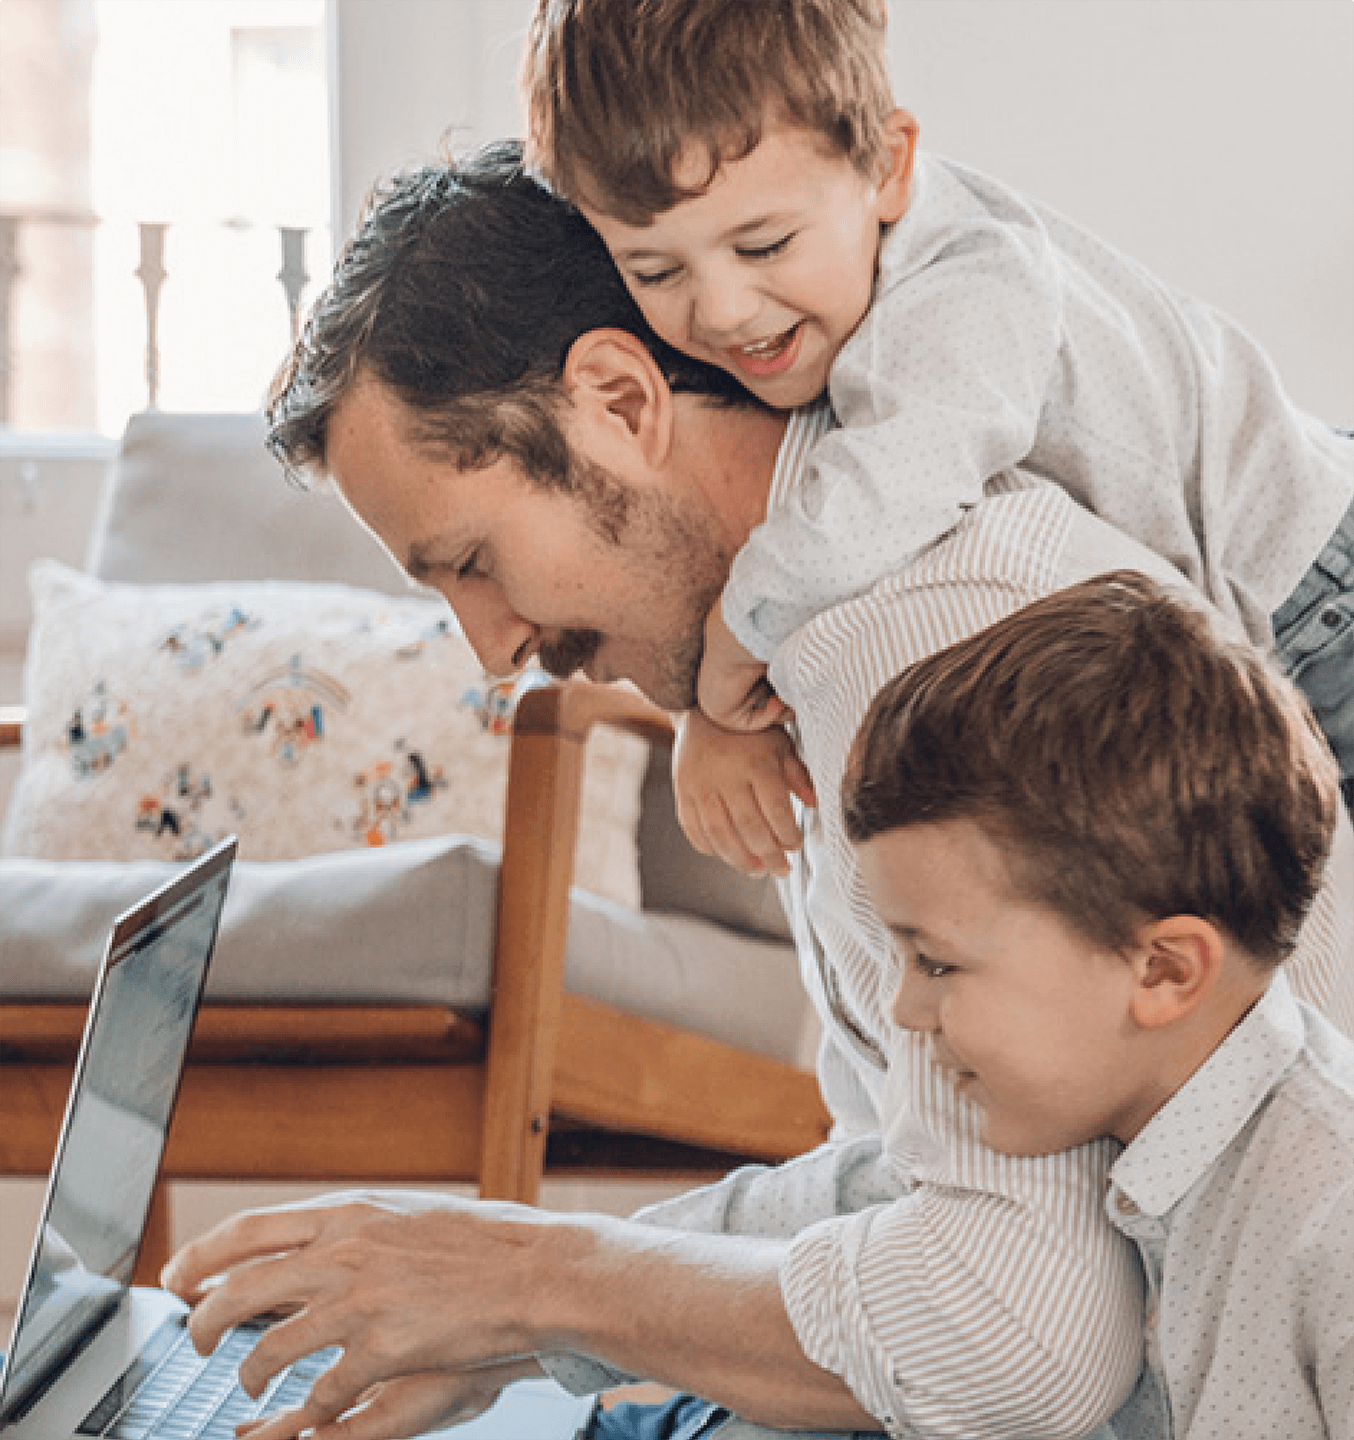 man on computer with 2 male kids climbing on hime